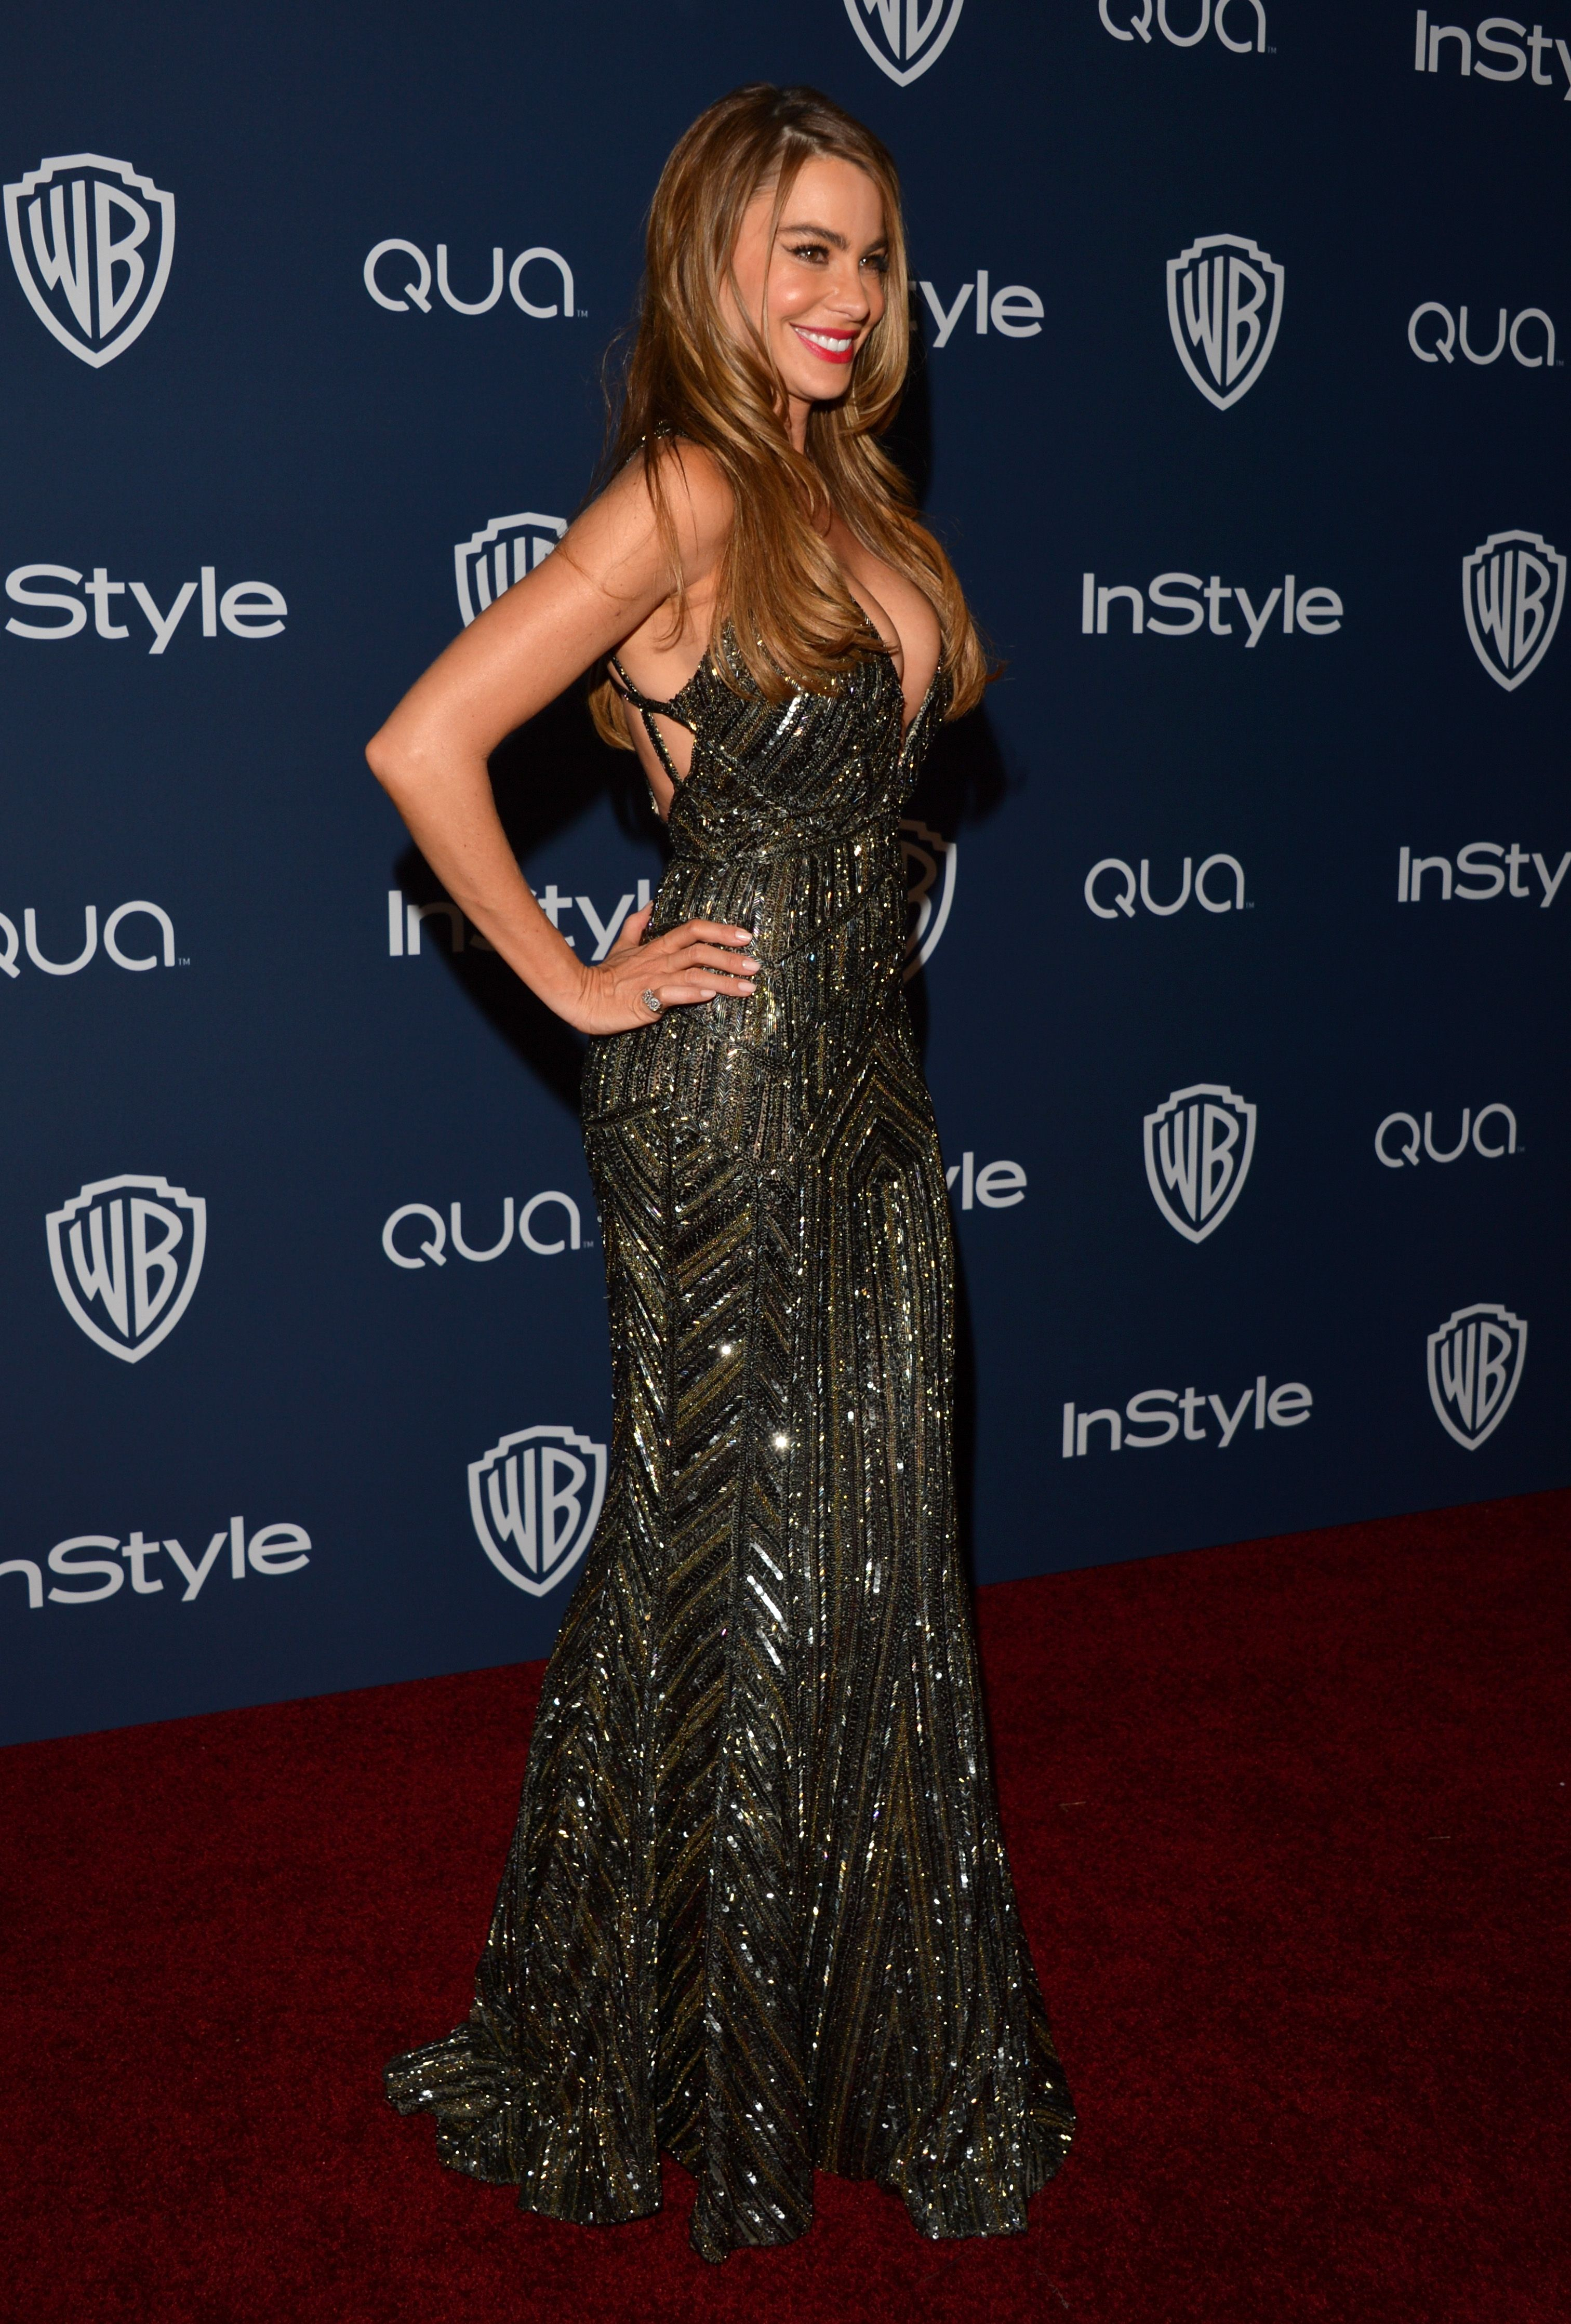 : Sofia Vergara changed into a sexy, sparkly number for the afterparty.